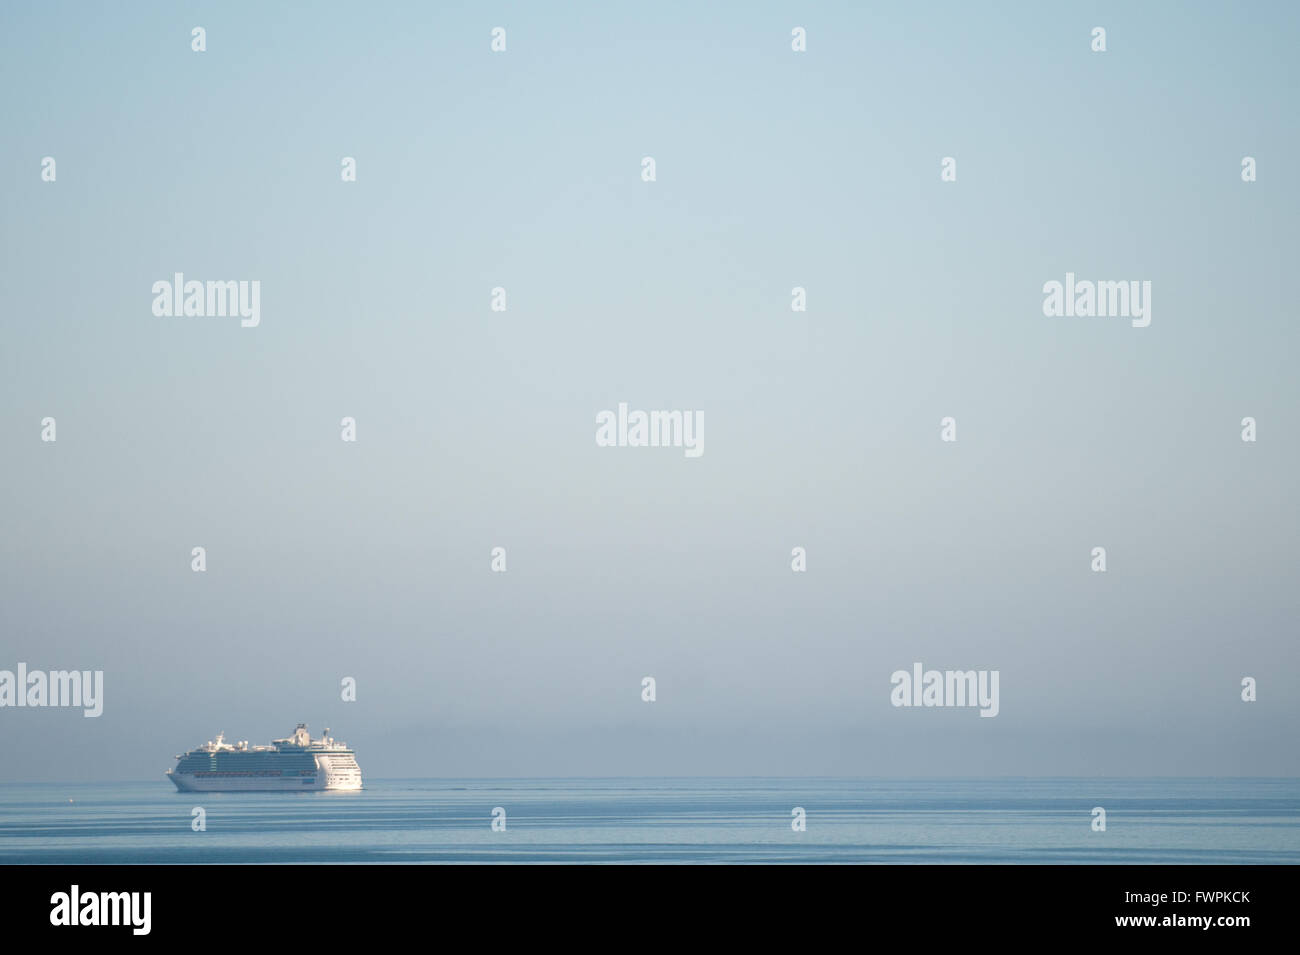 Cruise liner Independence of the Seas cruising on the Irish Sea, Ireland. - Stock Image